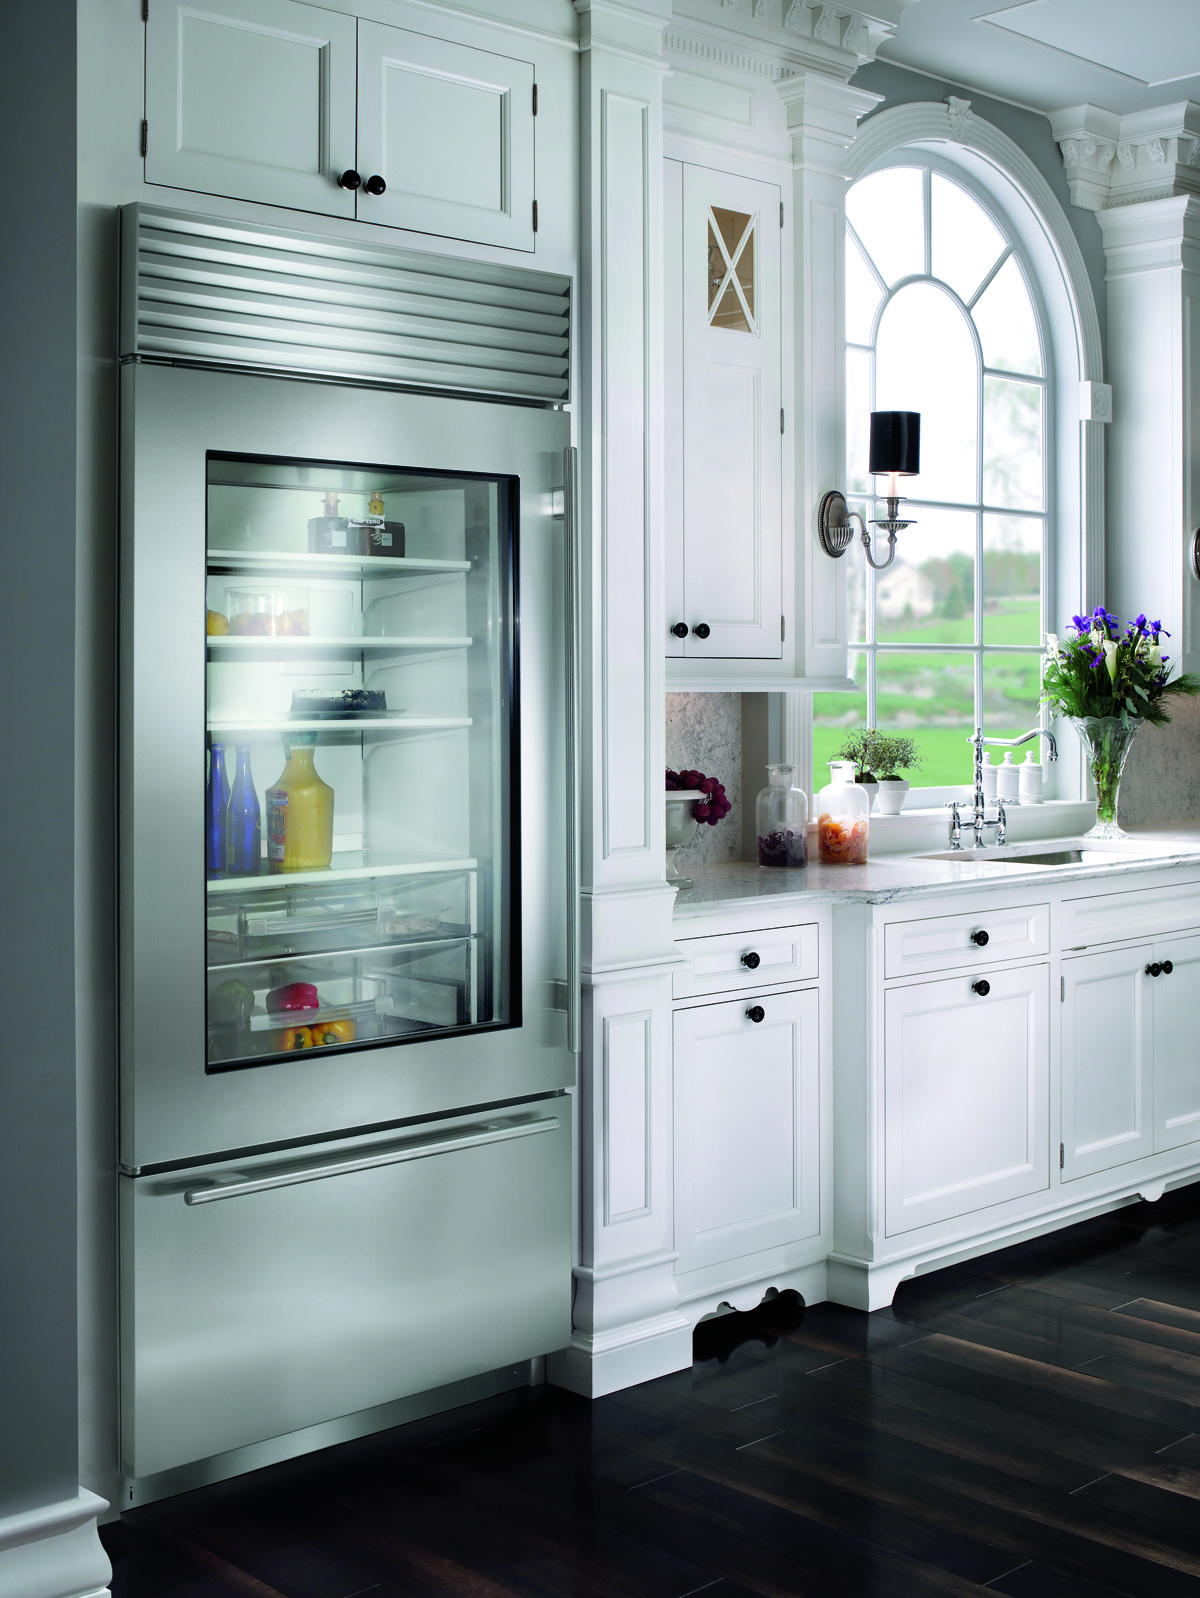 Momentum Construction Built In Refrigerator Differences